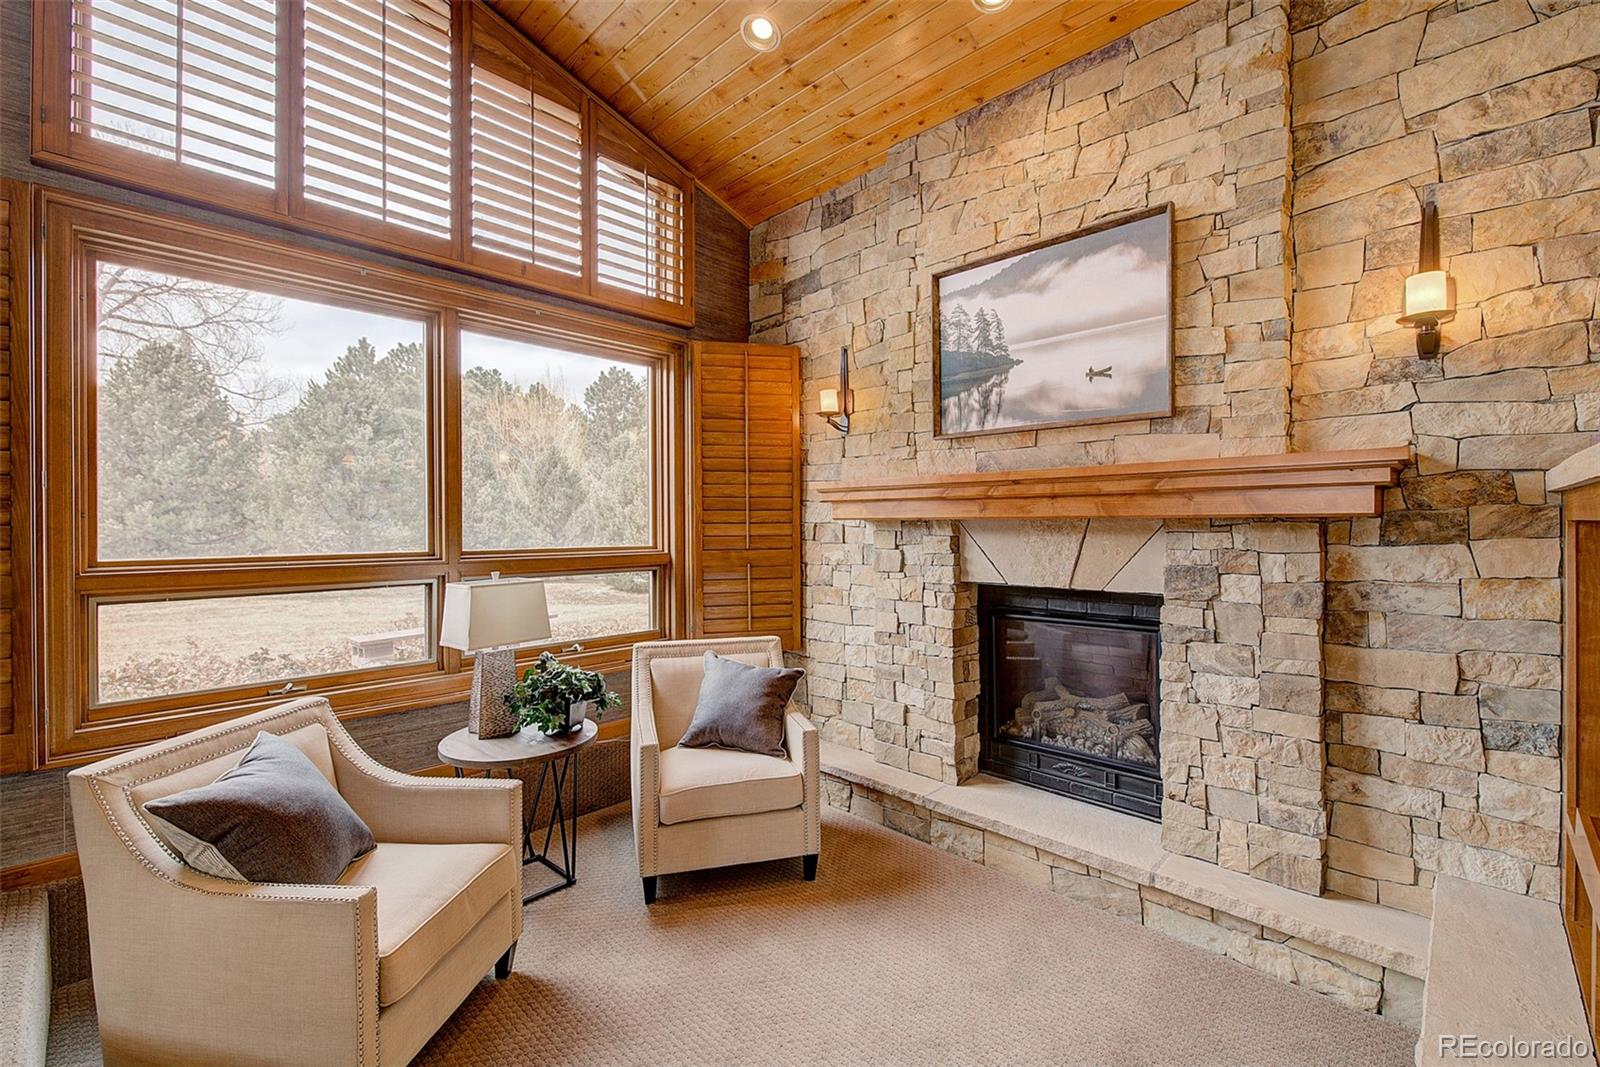 MLS# 9665076 - 17 - 5843 Willowbrook Drive, Morrison, CO 80465